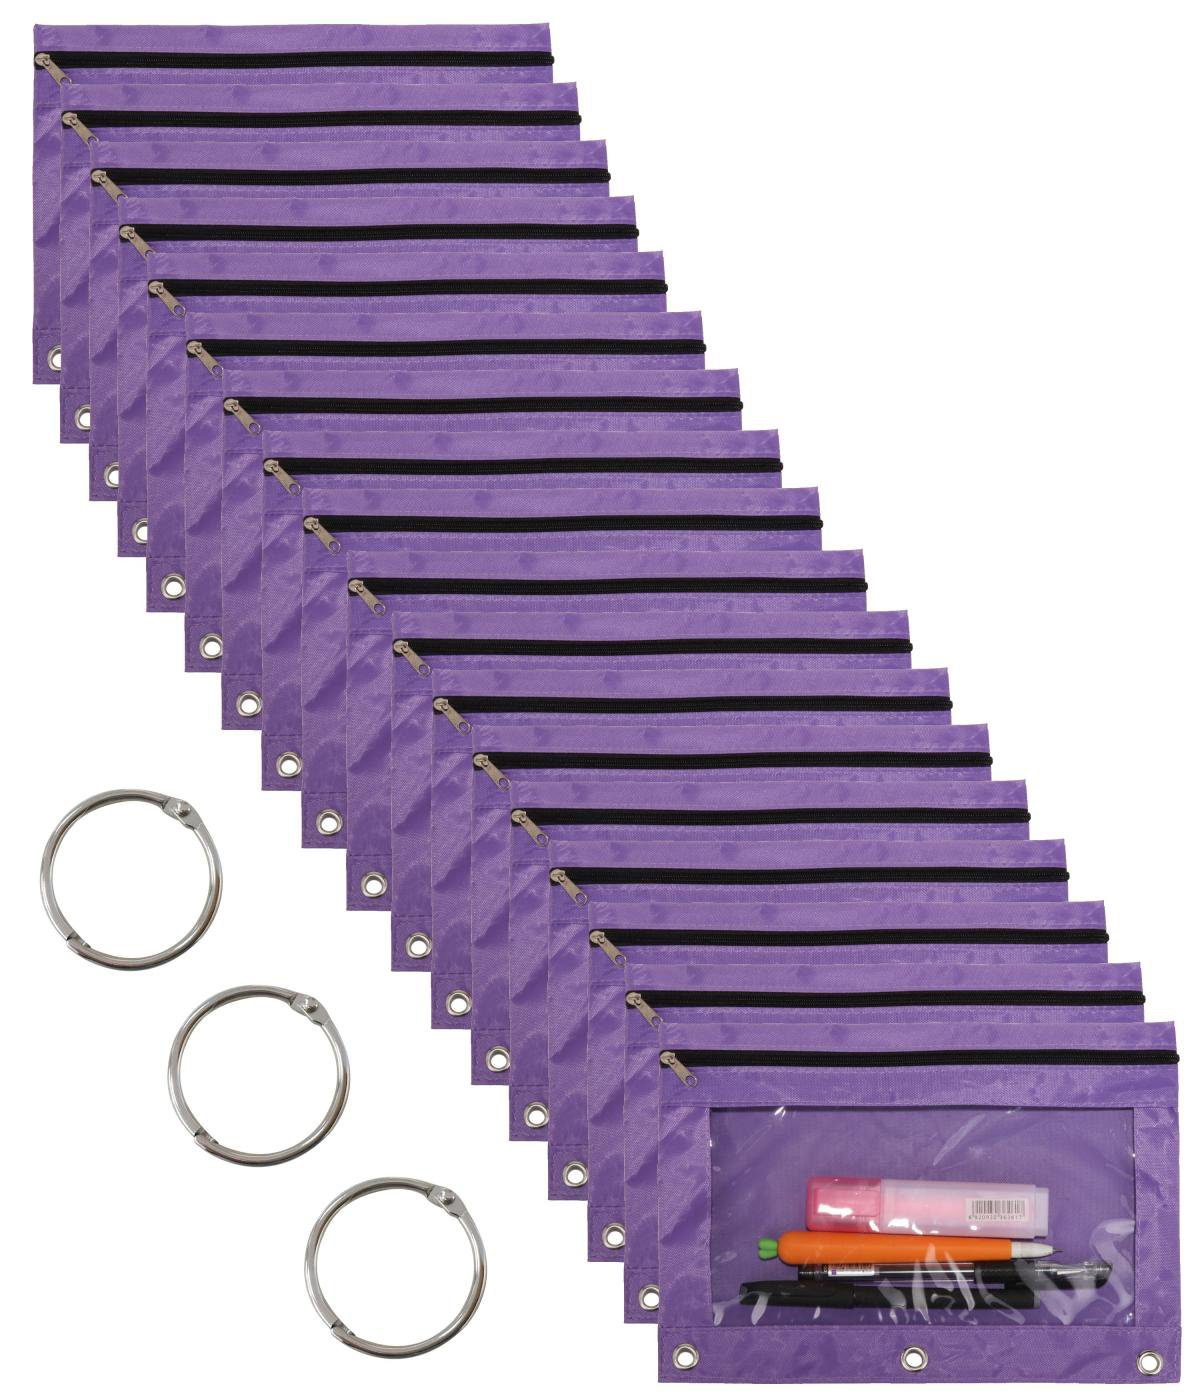 WODISON 18-Packs 3 Ring Pencil Pouch with Clear Window School Classroom Binder Pocket Case Office Stationery Bag Purple